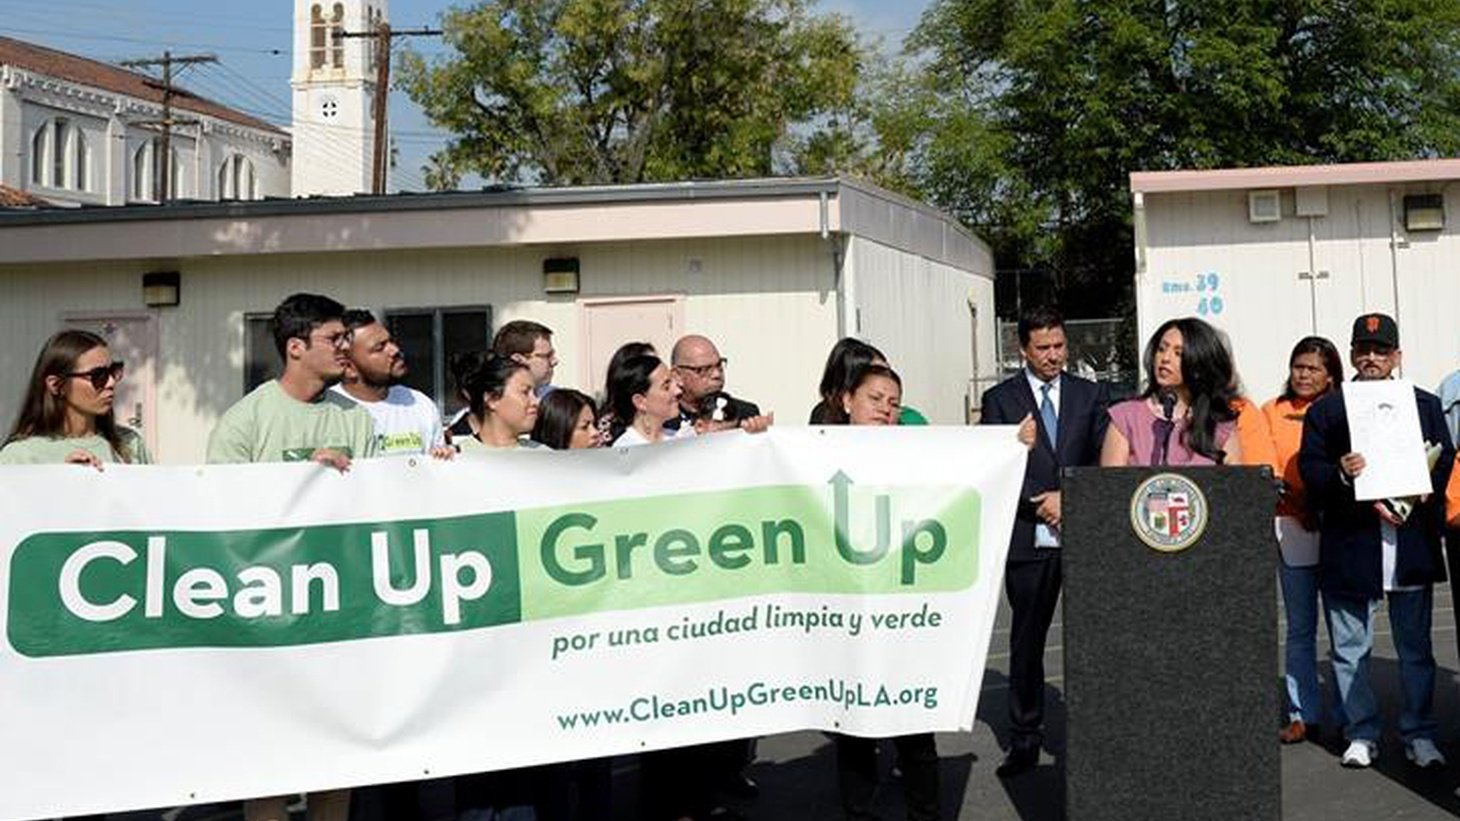 Three Los Angeles neighborhoods are the target of Clean-Up Green Up, legislation passed by the Los Angeles City Council. Boyle Heights, Wilmington and the Sun Valley-Pacoima have long been considered toxic hot spots due to pollution levels from a variety of sources. A look at how the new program will impact businesses and residents.